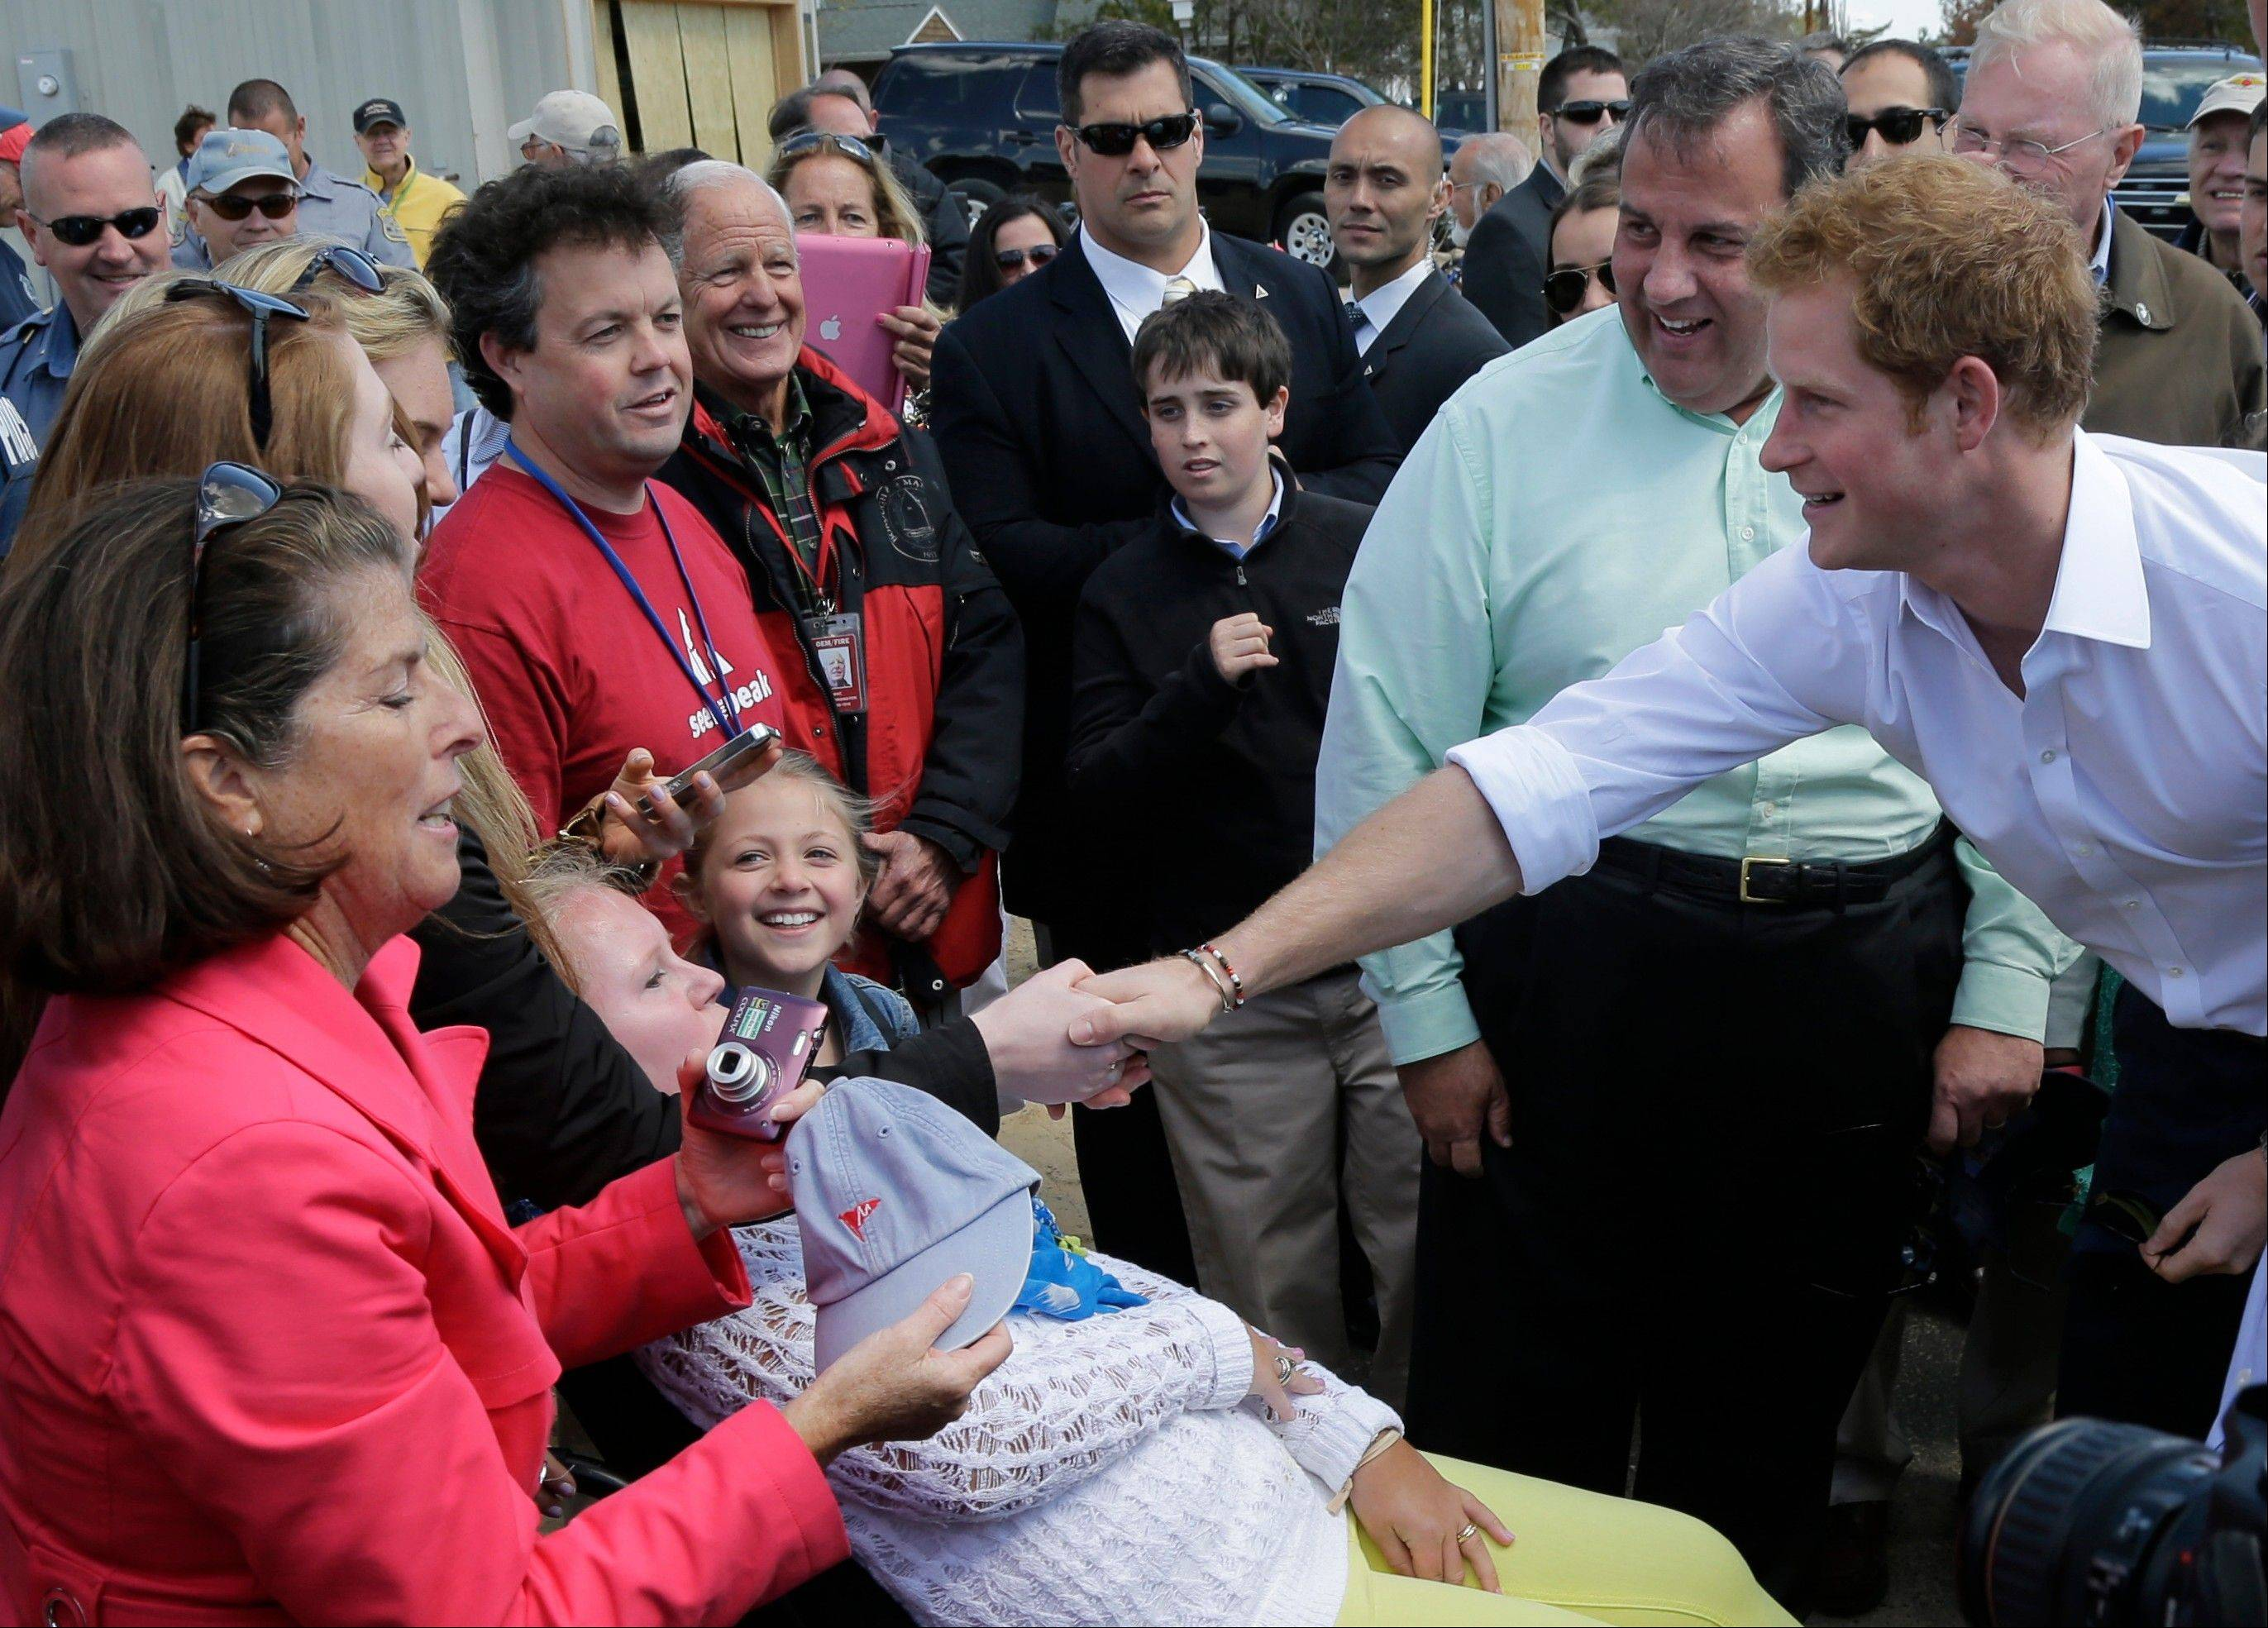 Britain's Prince Harry toured New Jersey's storm-damaged coastline, inspecting dune construction, walking past destroyed homes and shaking hands with police and other emergency workers. New Jersey sustained about $37 billion worth of damage from the storm.